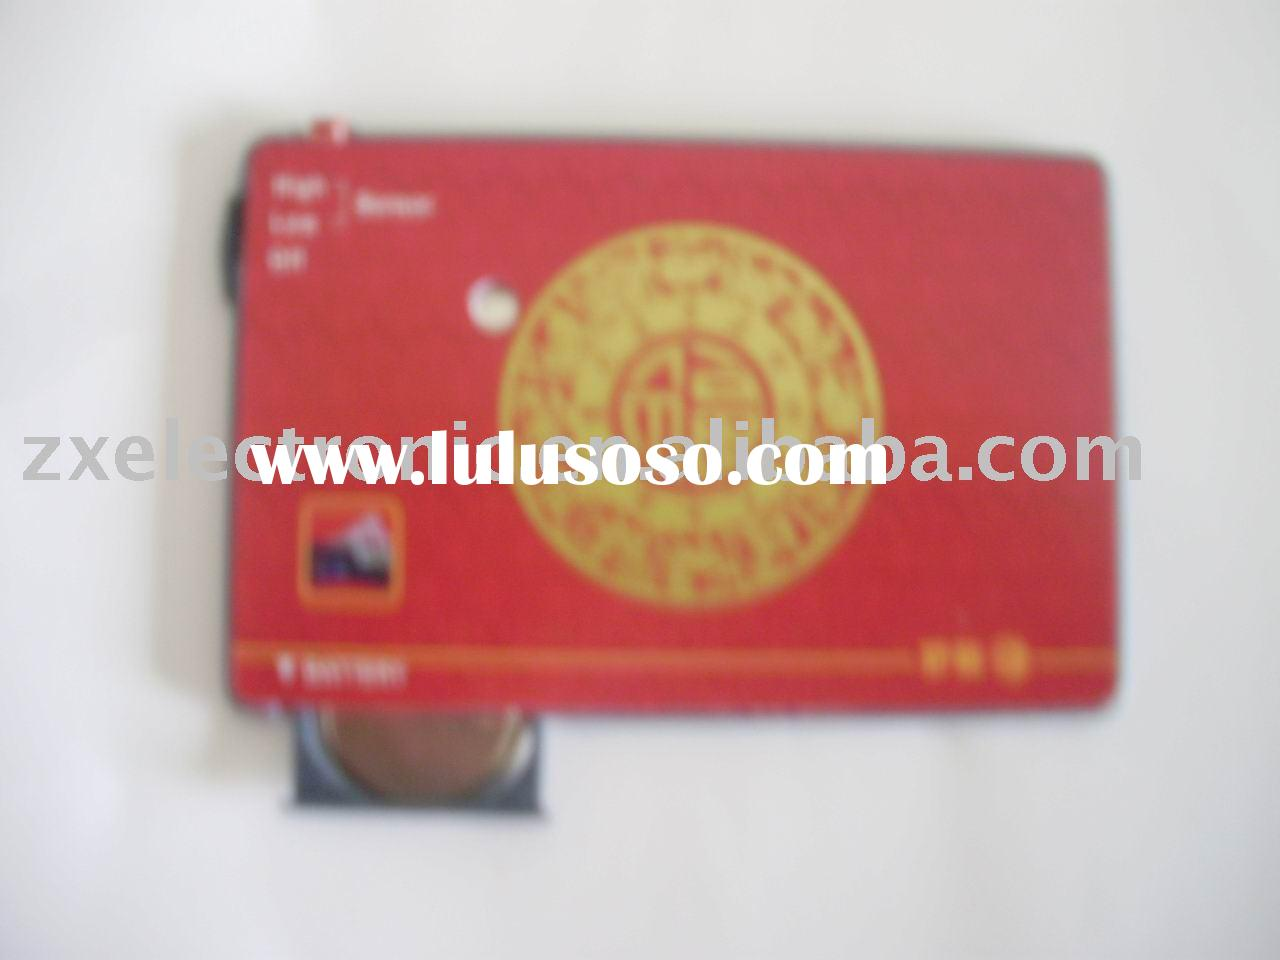 Personal safety device for wallet & passport